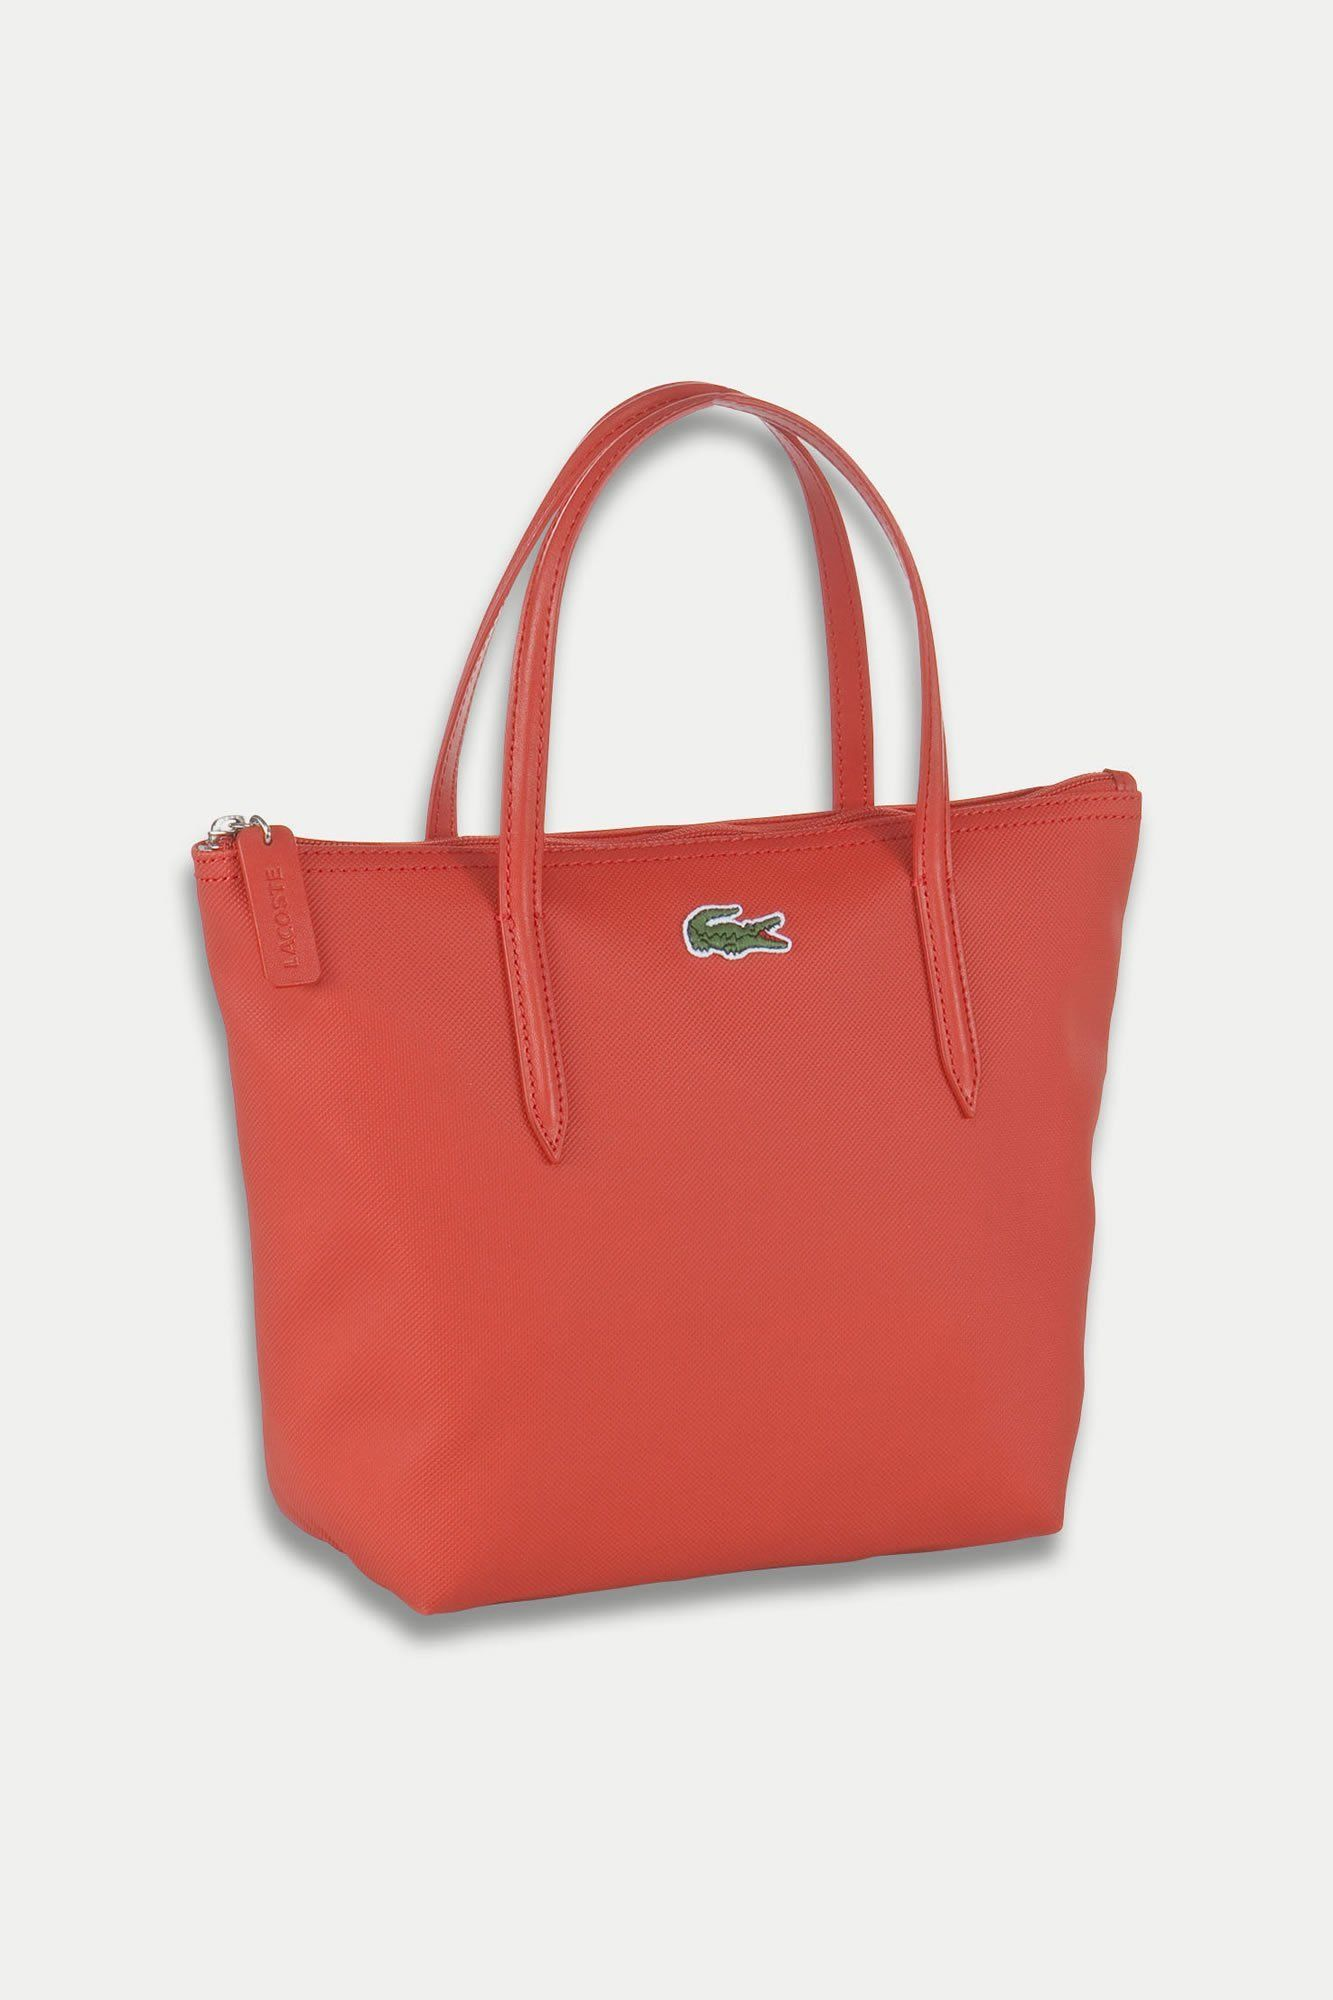 d294fc8ce351 Lacoste bag great for a day out or traveling light over night. Fun colors  too